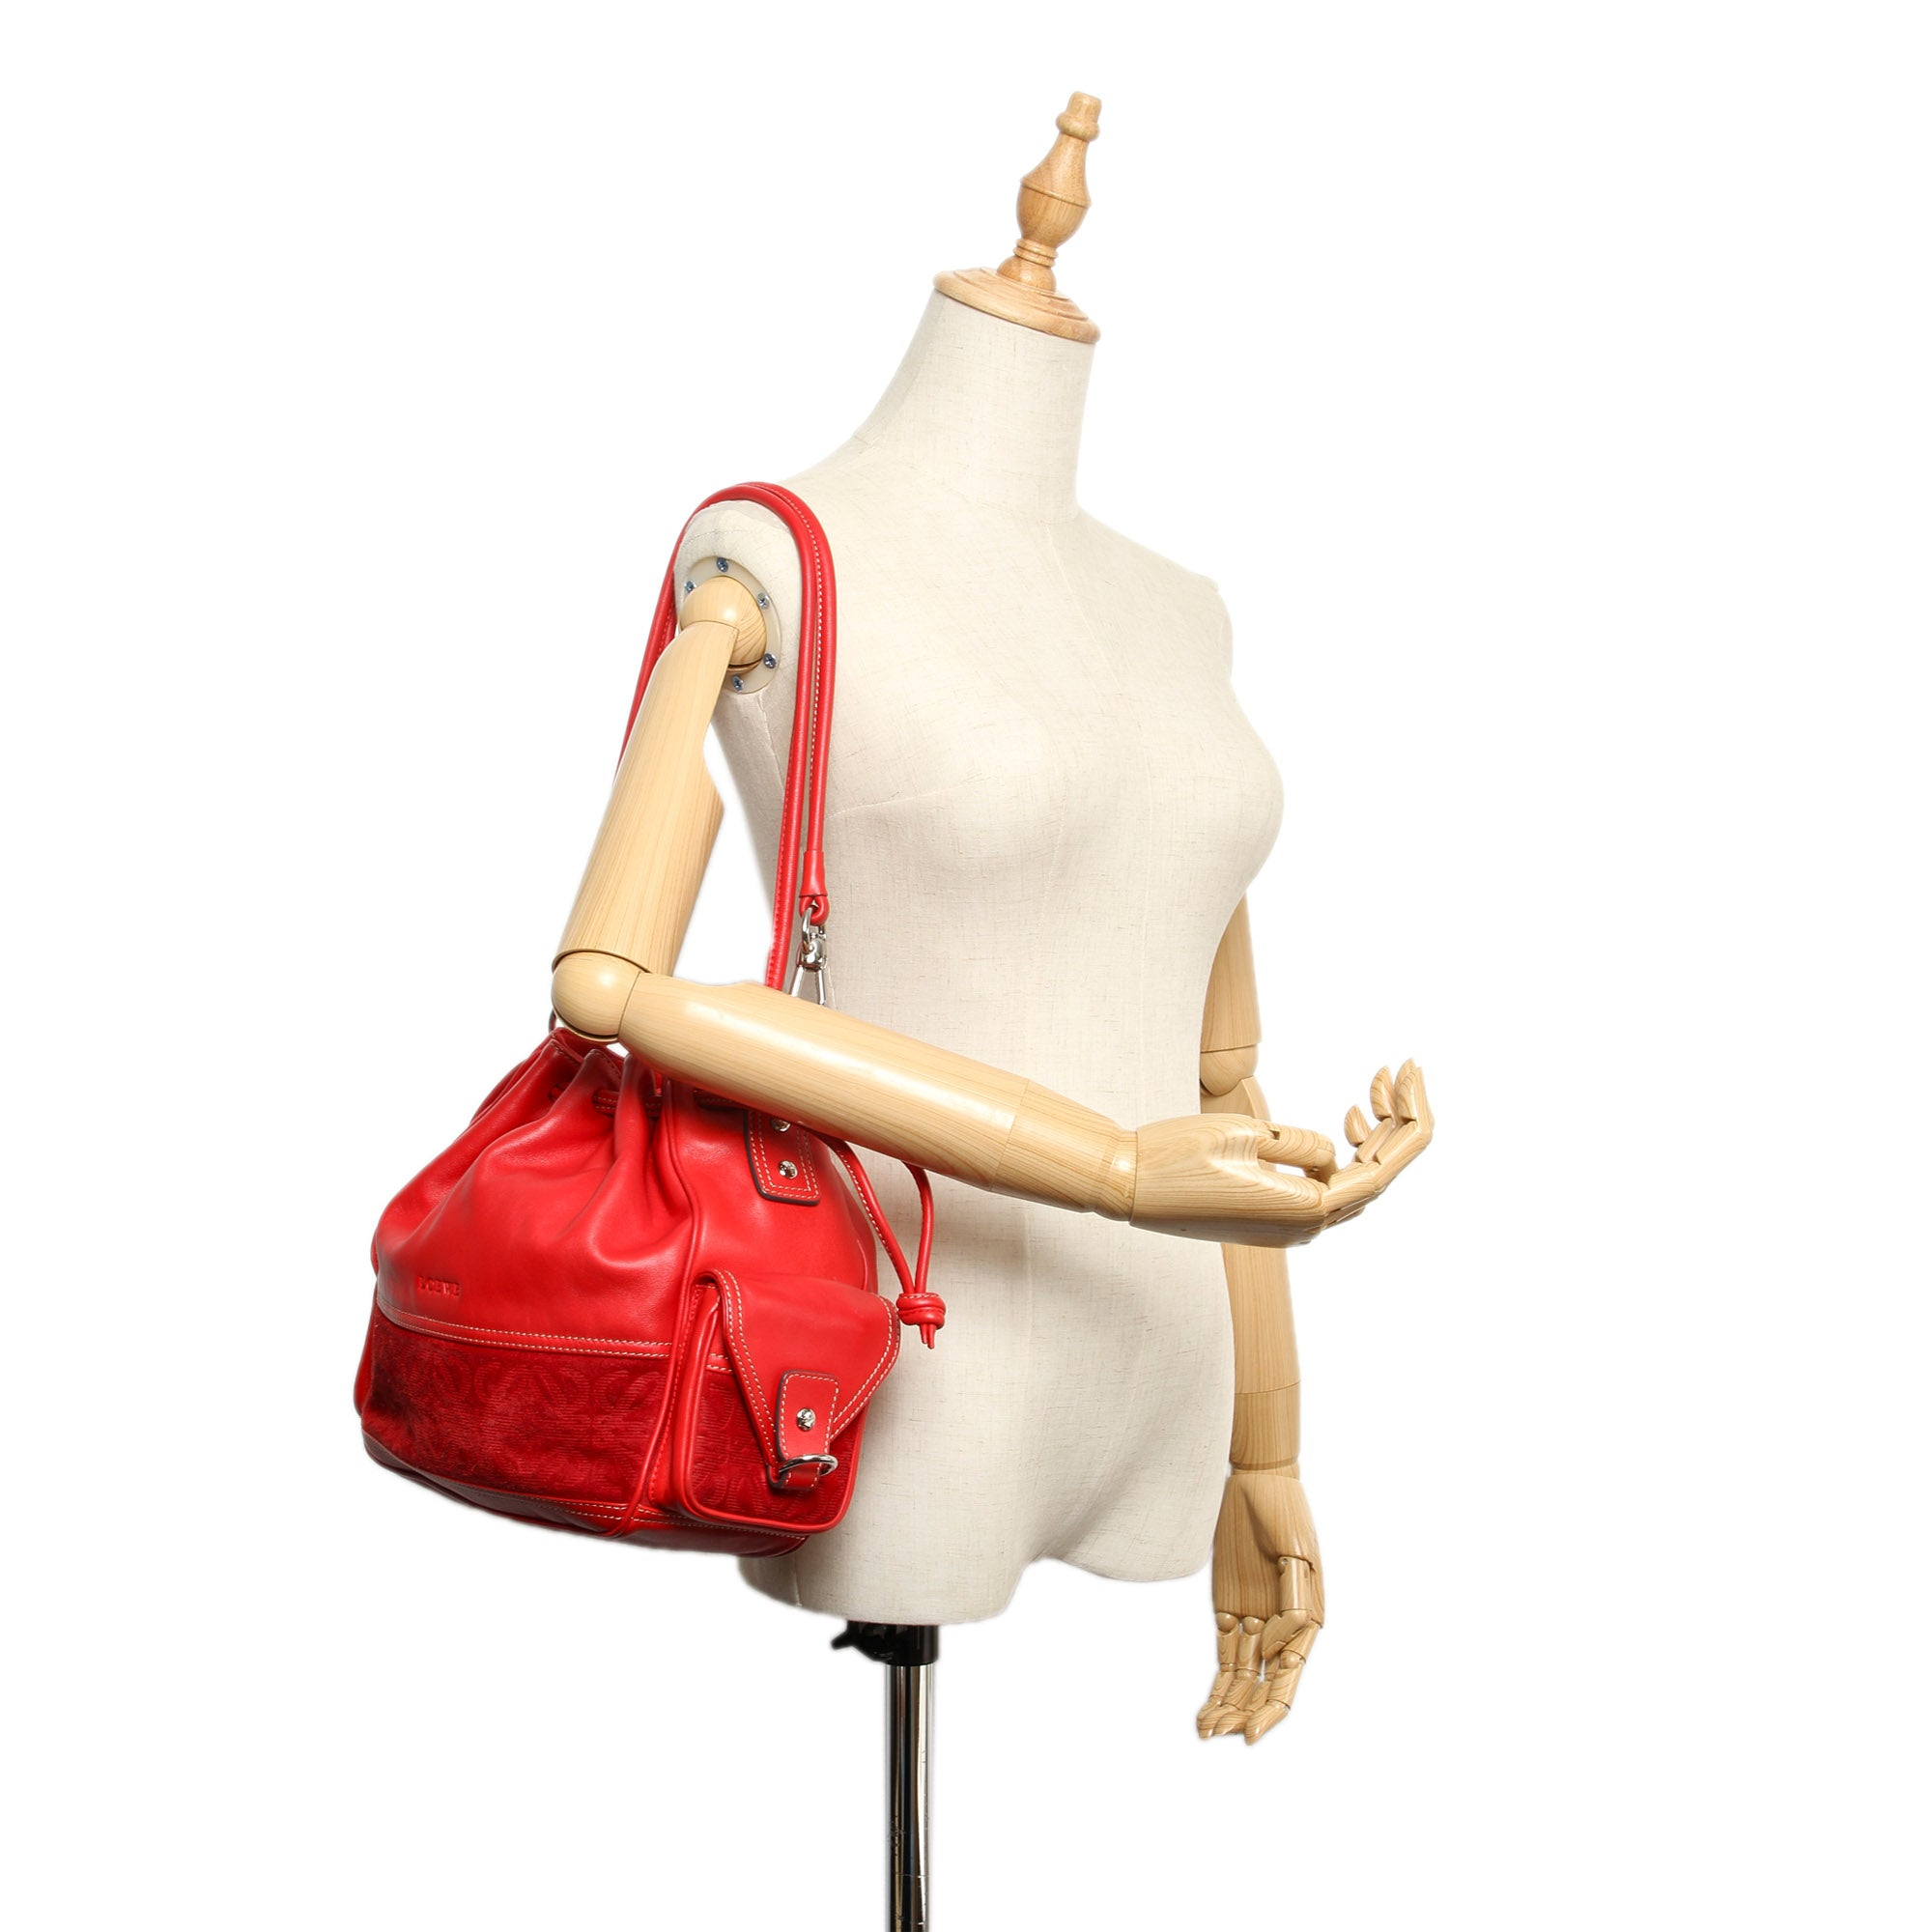 Loewe Red Flamenco Leather Shoulder Bag